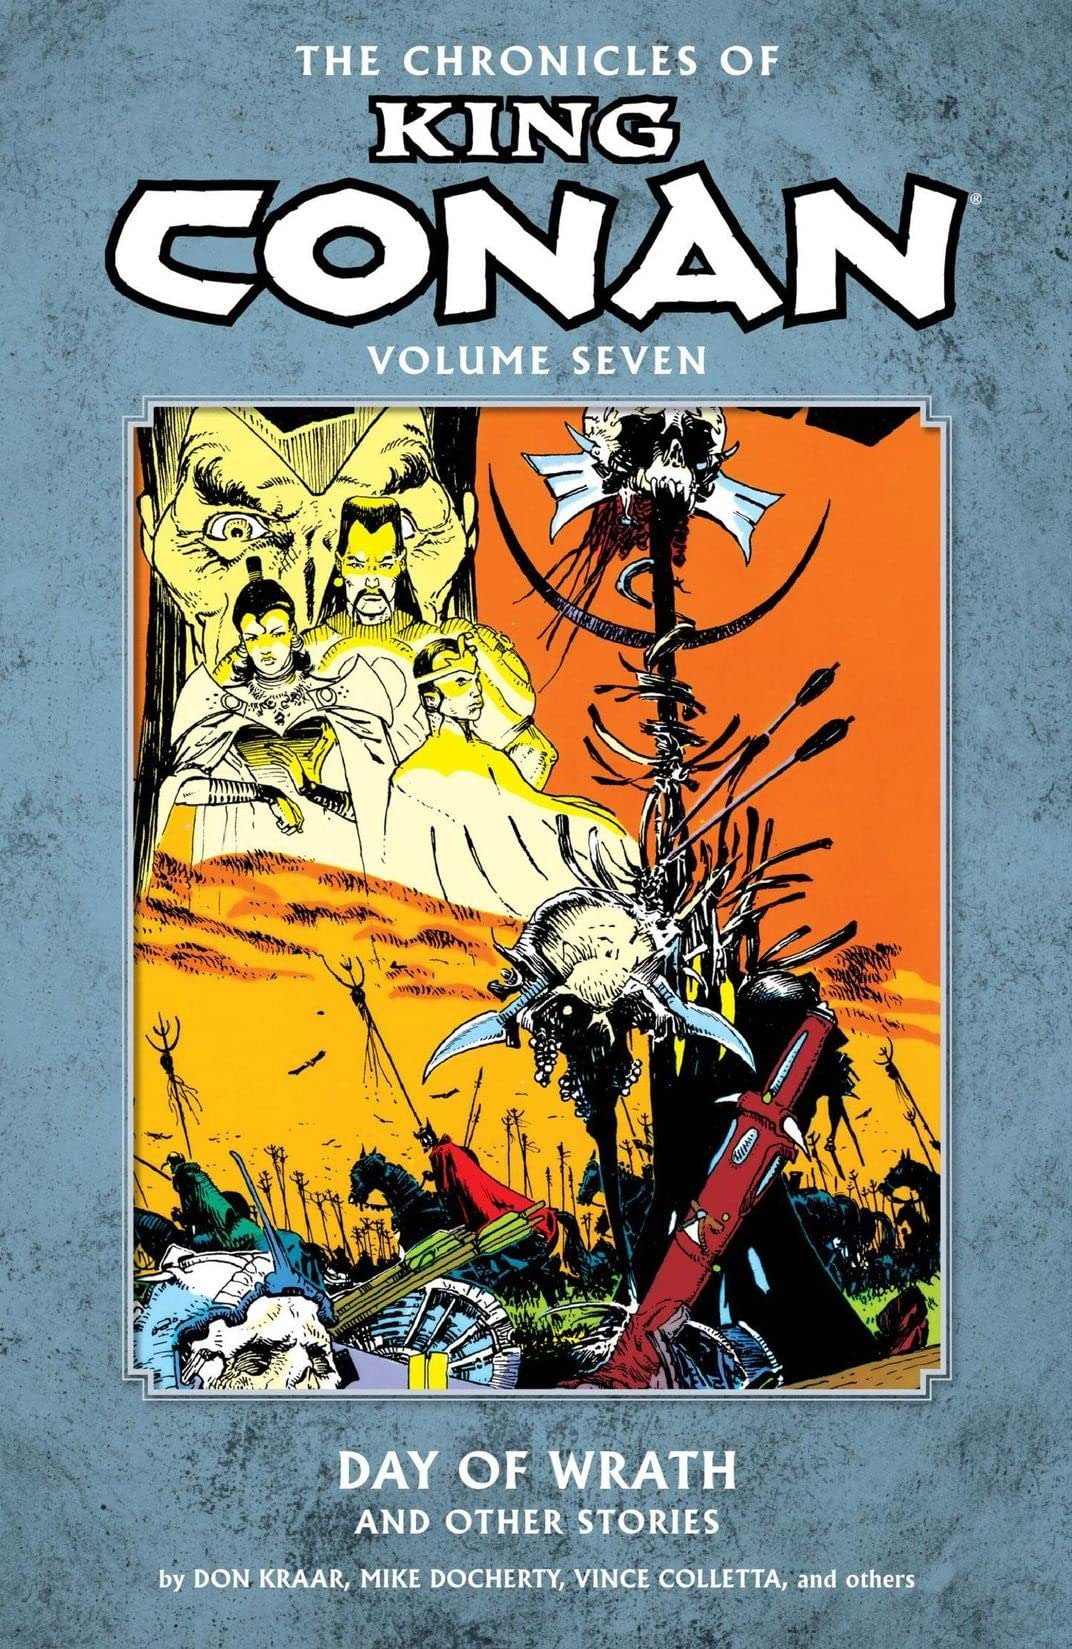 The Chronicles of King Conan Vol. 7: Day of Wrath and Other Stories